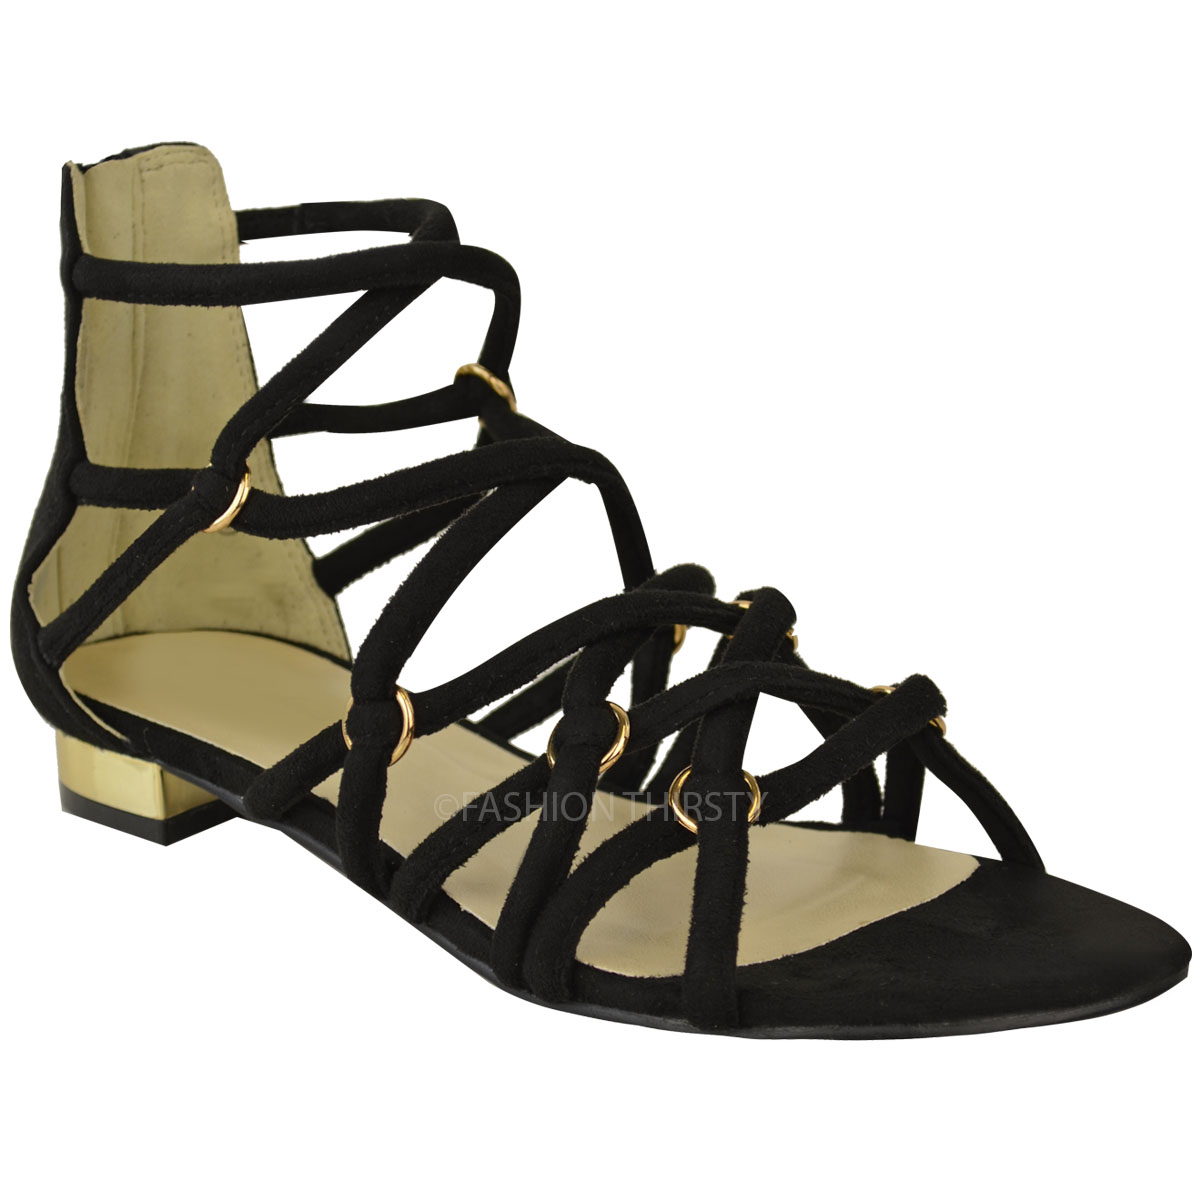 Popular WOMENS FLAT GEM T BAR STRAPPY LADIES FASHION SANDALS SHOES SIZE 38